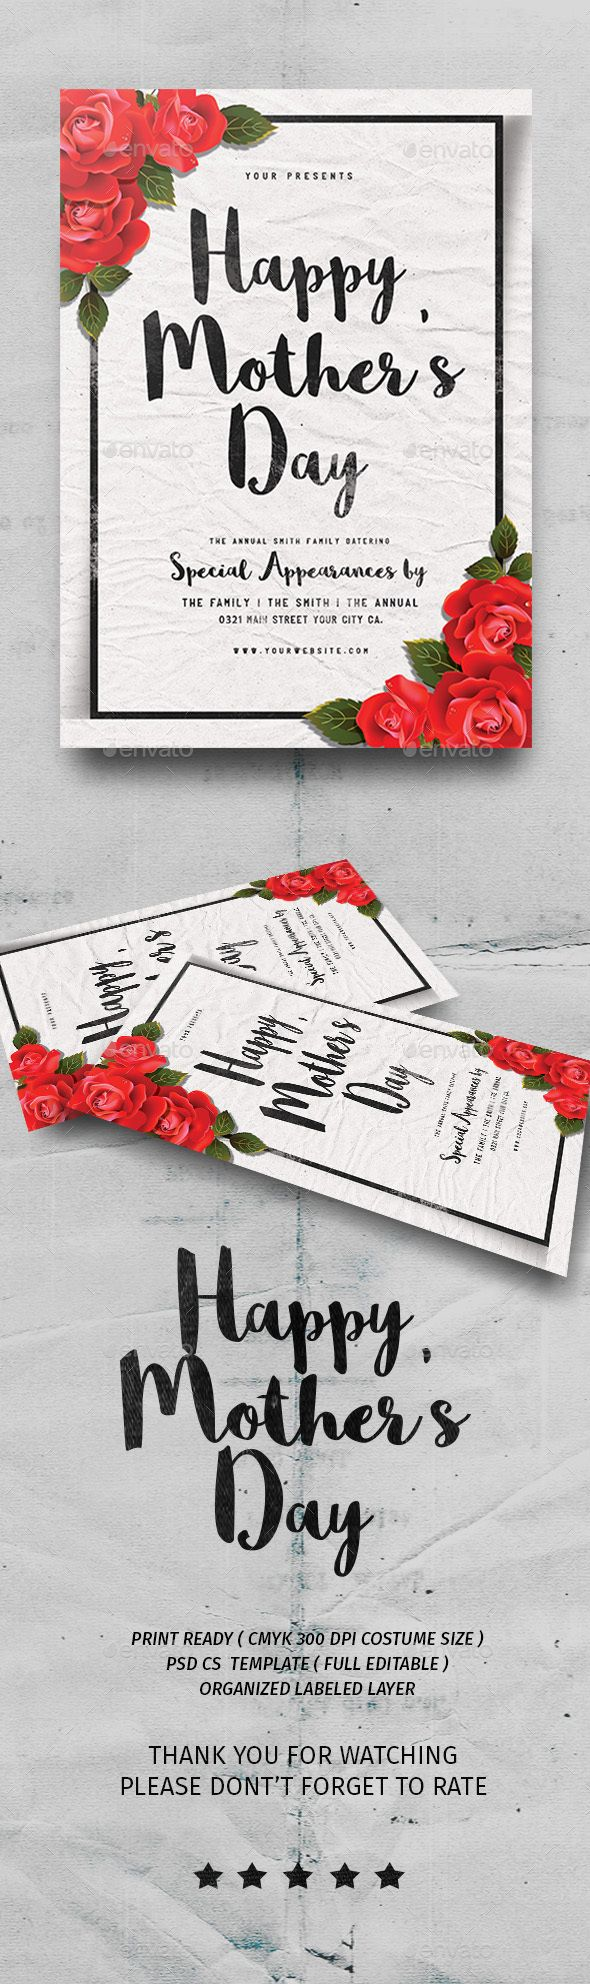 Happy Mother's Day — Photoshop PSD #flowers #mom • Download here → https://graphicriver.net/item/happy-mothers-day/15772711?ref=pxcr